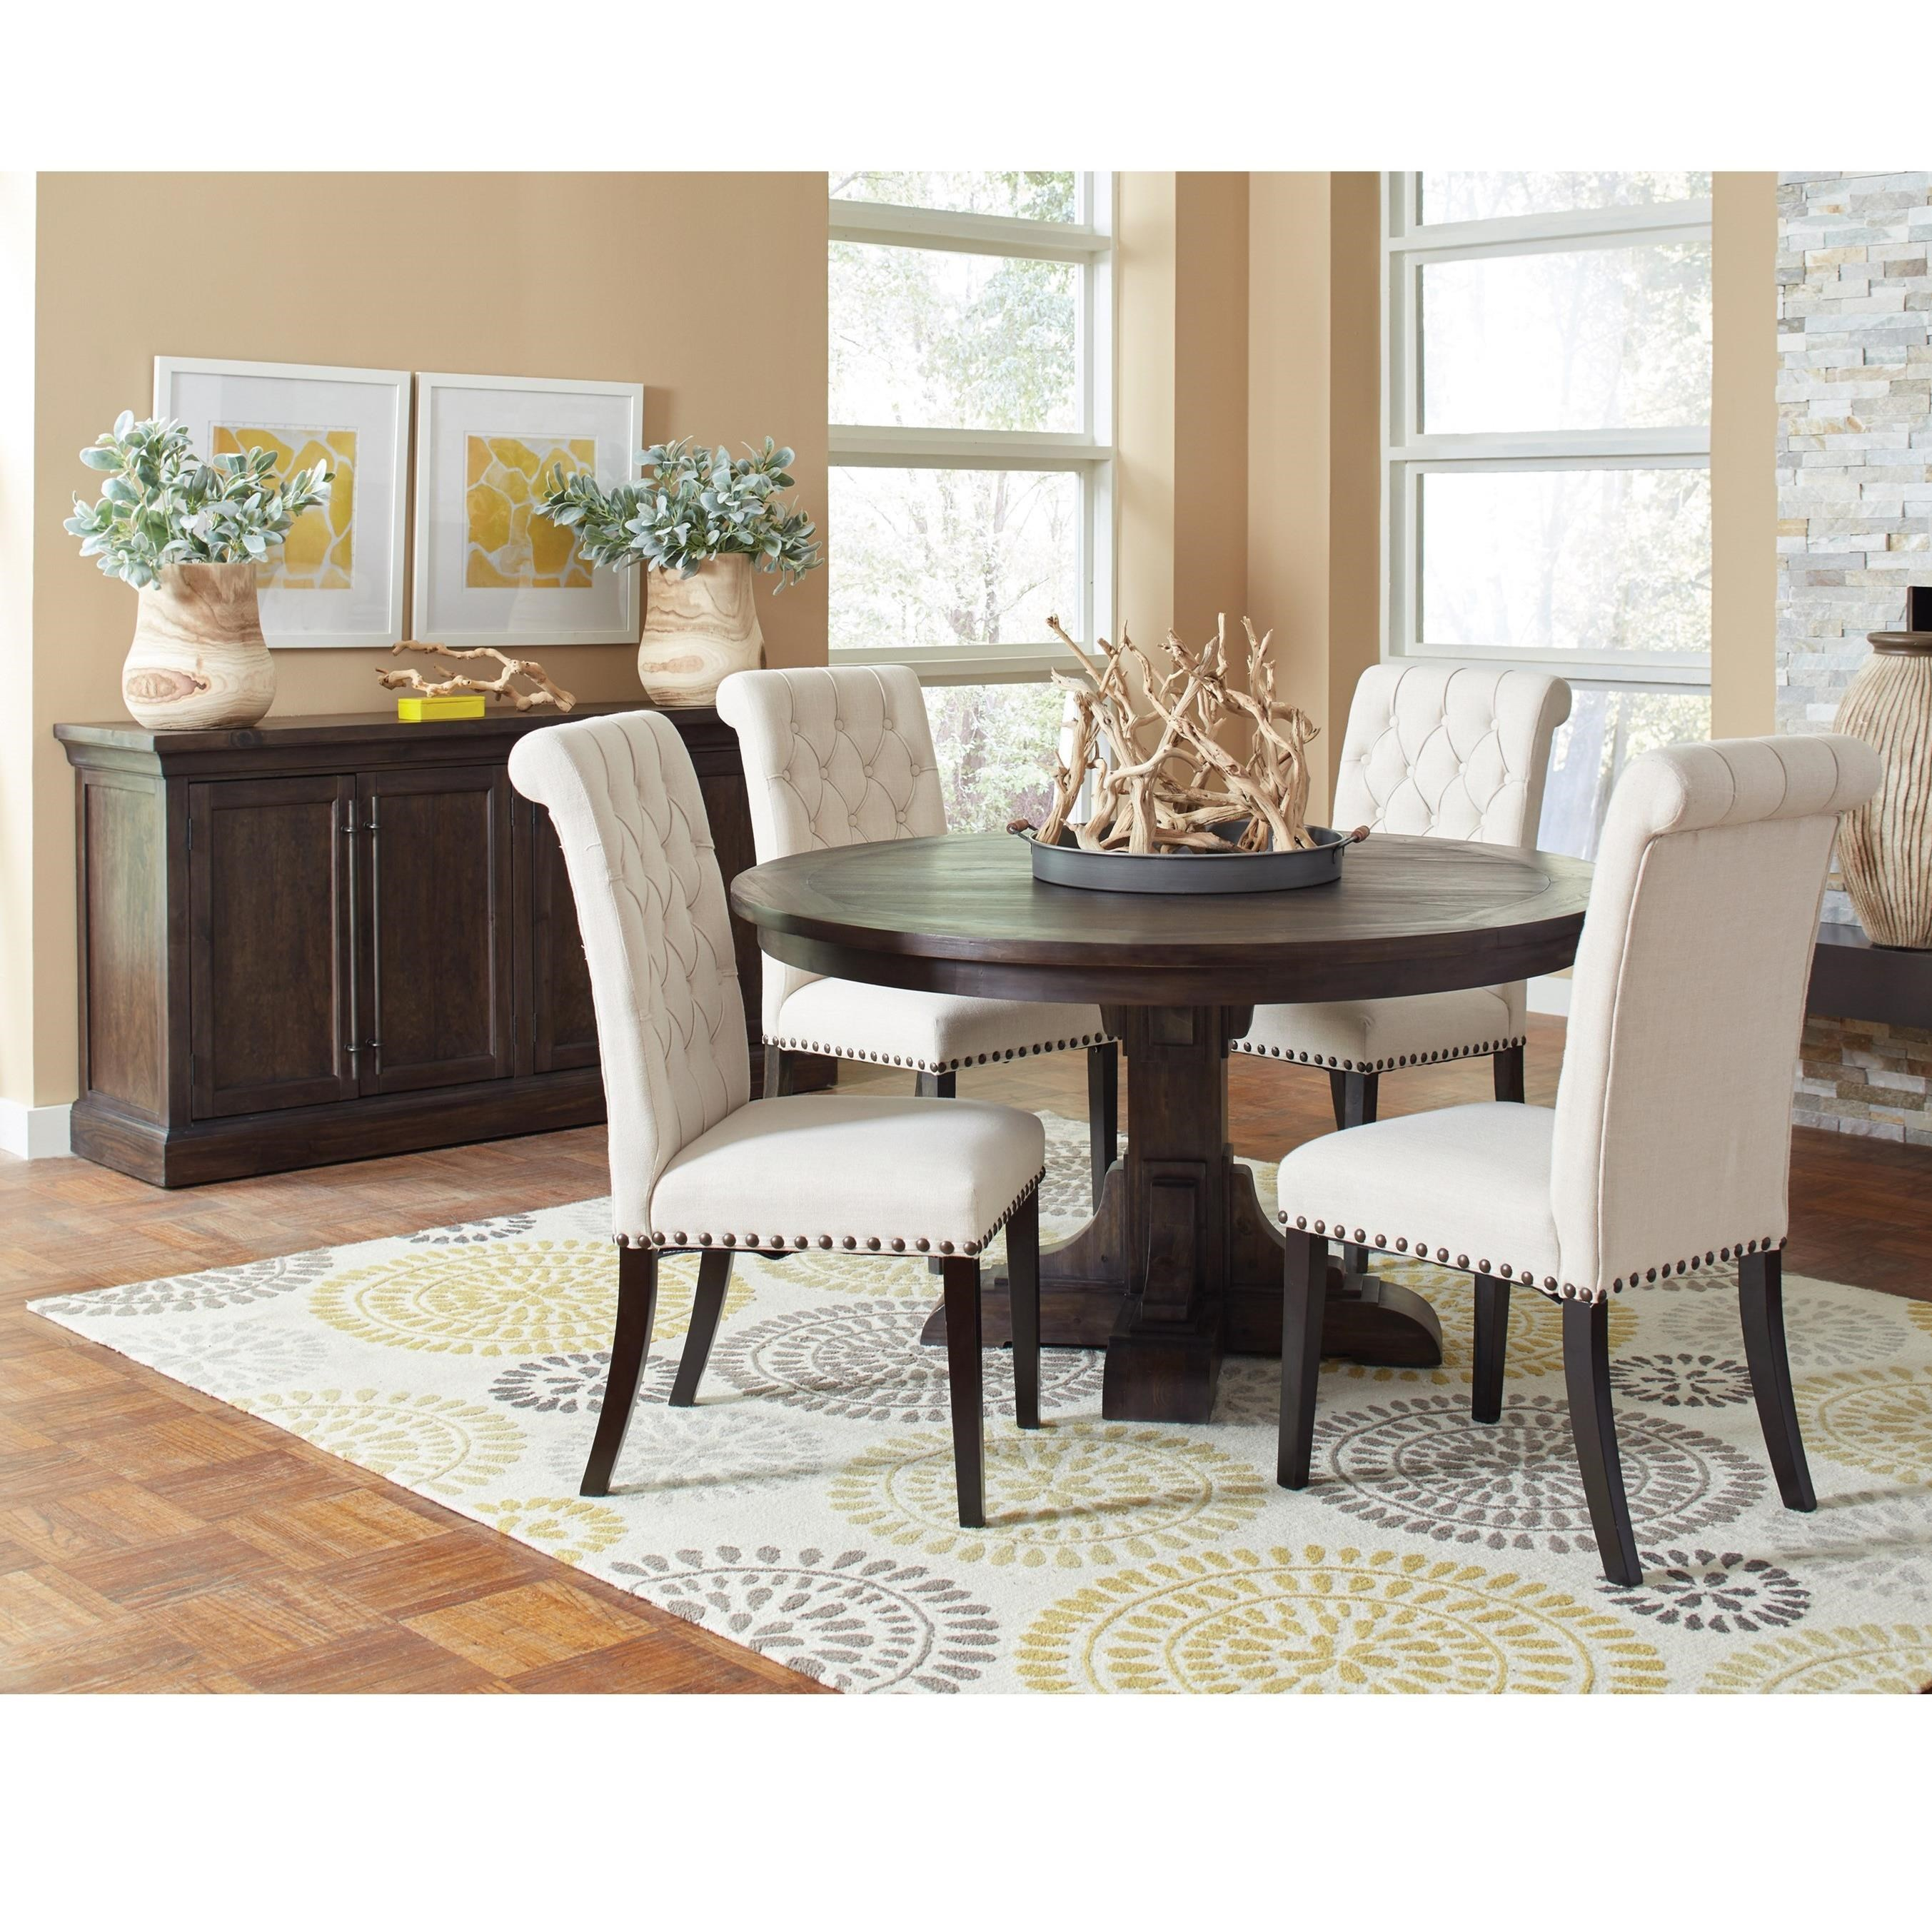 Coaster Weber Casual Dining Room Group With Cream Upholstered Chair    Coaster Fine Furniture